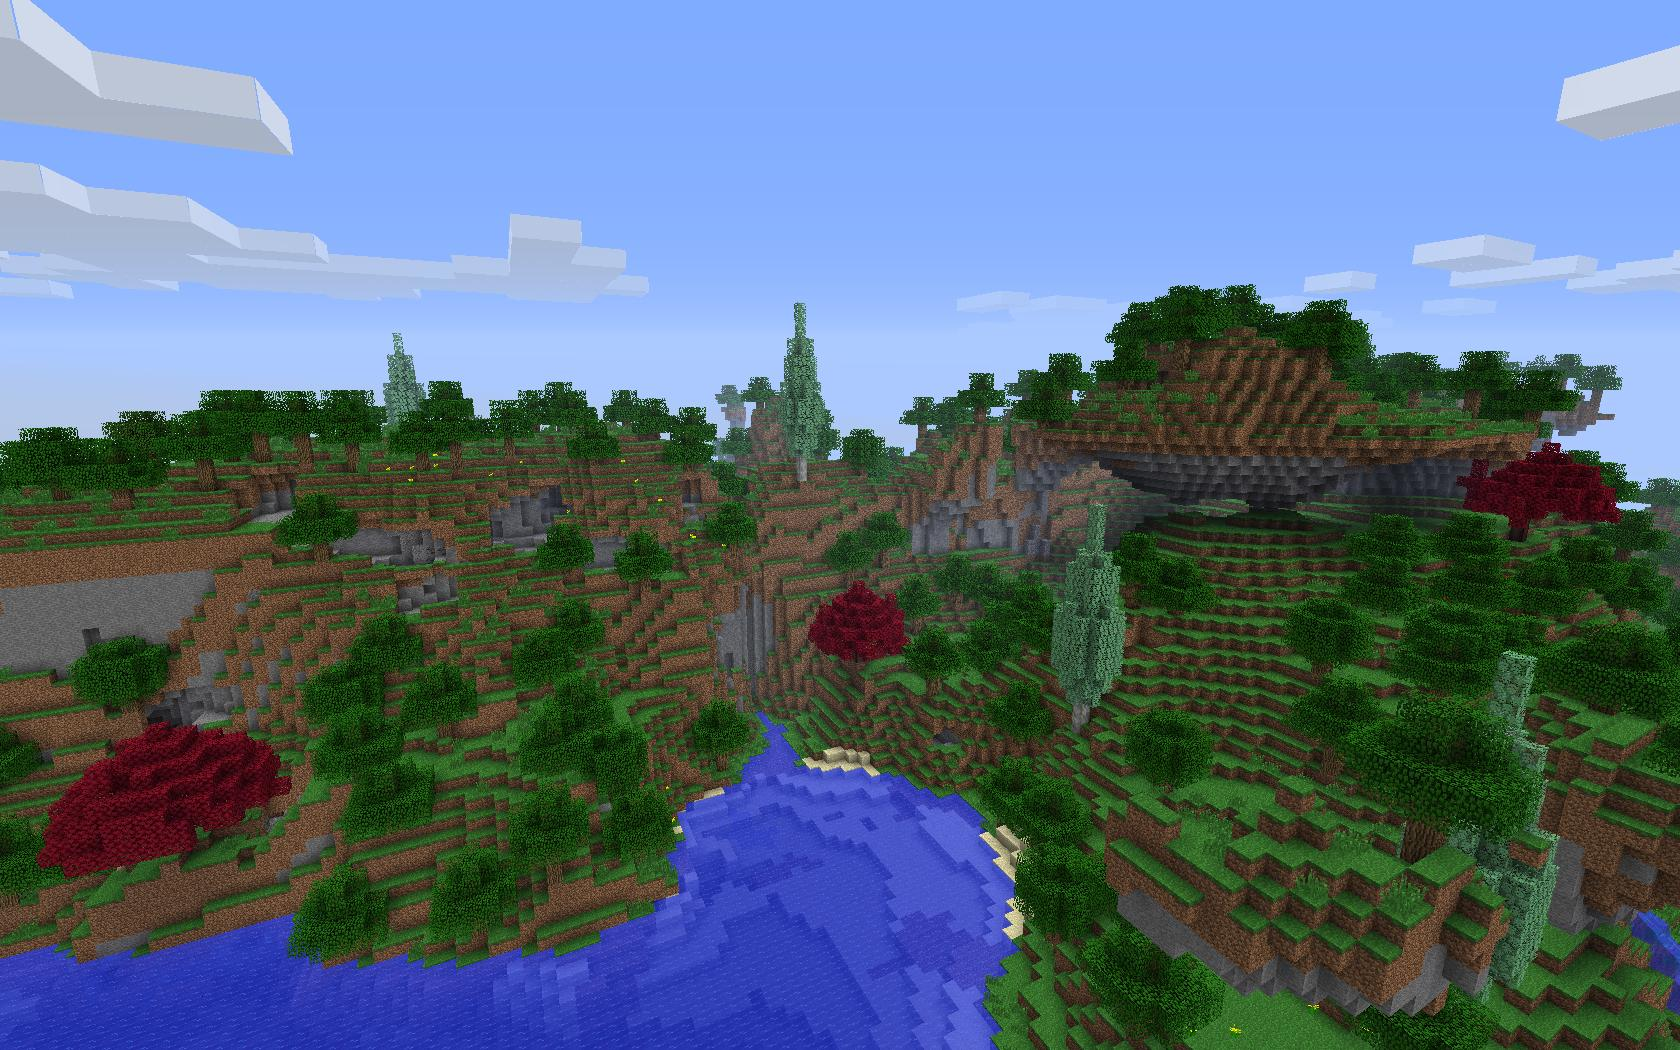 cypress tree and japanese maple tree in a forested hill biome